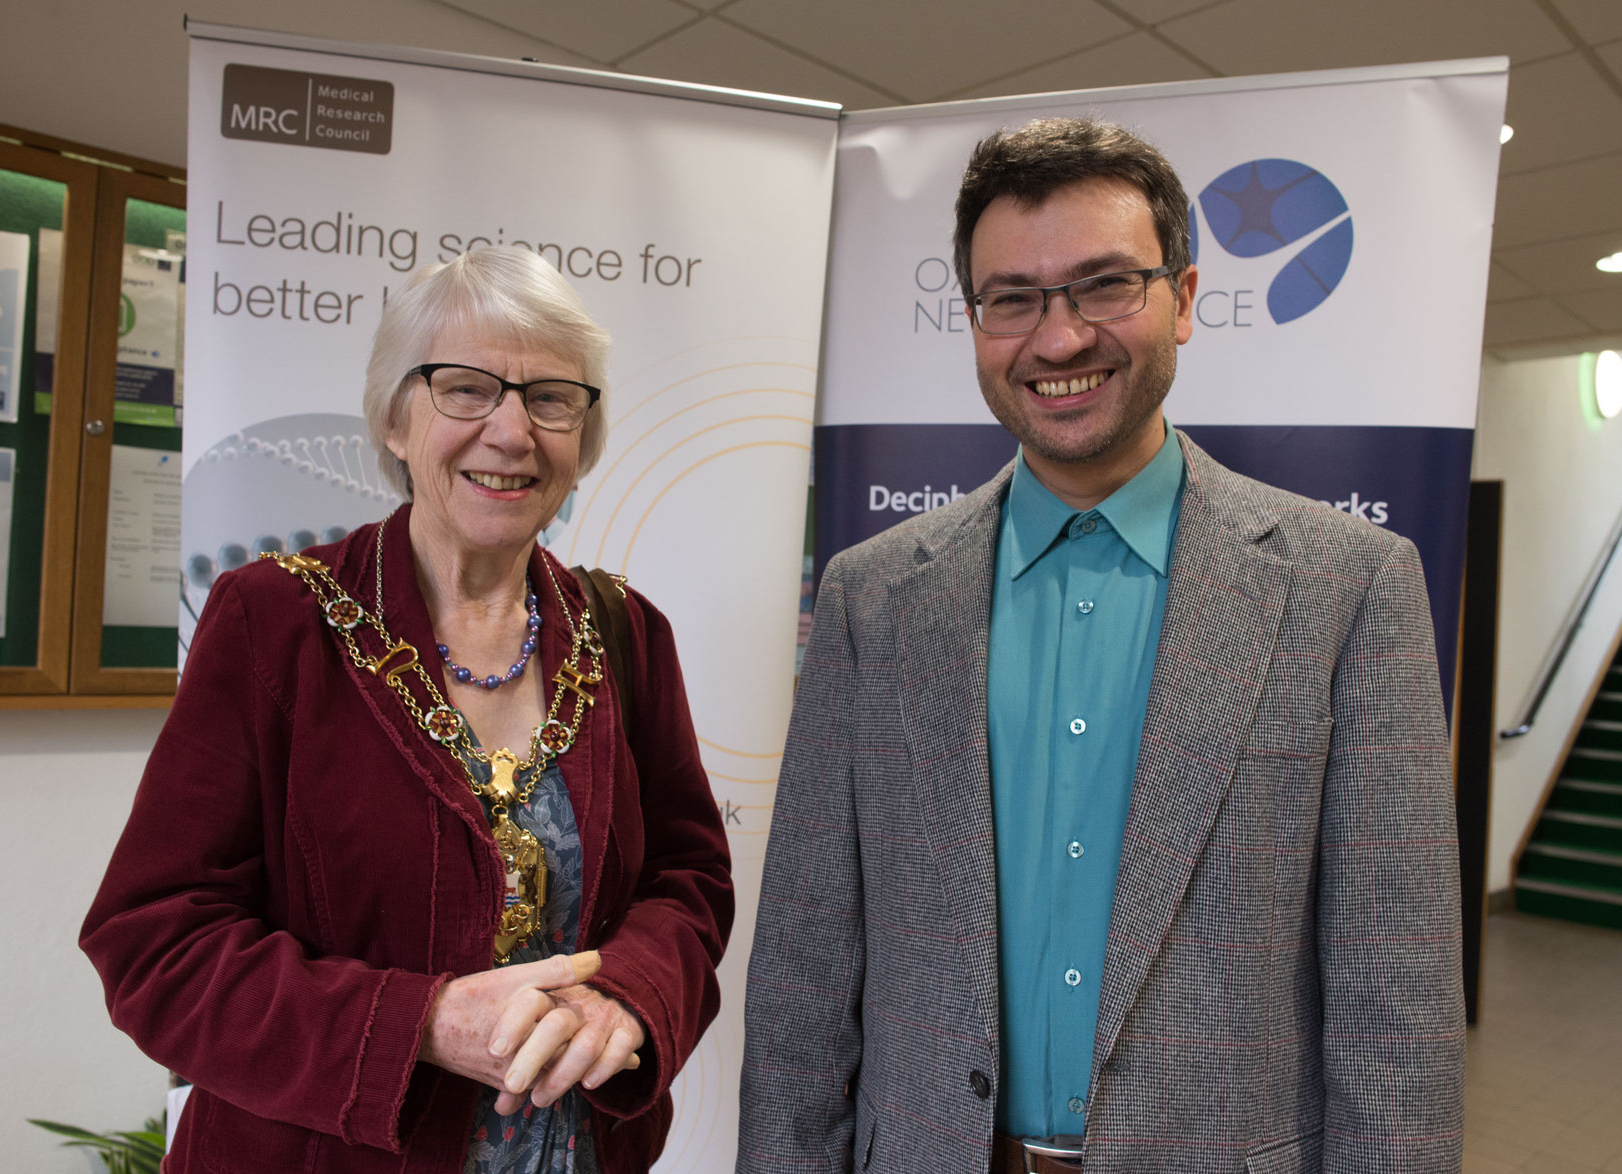 The MRC BNDU is visited by Councillor Jean Fooks, the Lord Mayor of Oxford, here with Unit scientist Dr Rafal Bogacz.